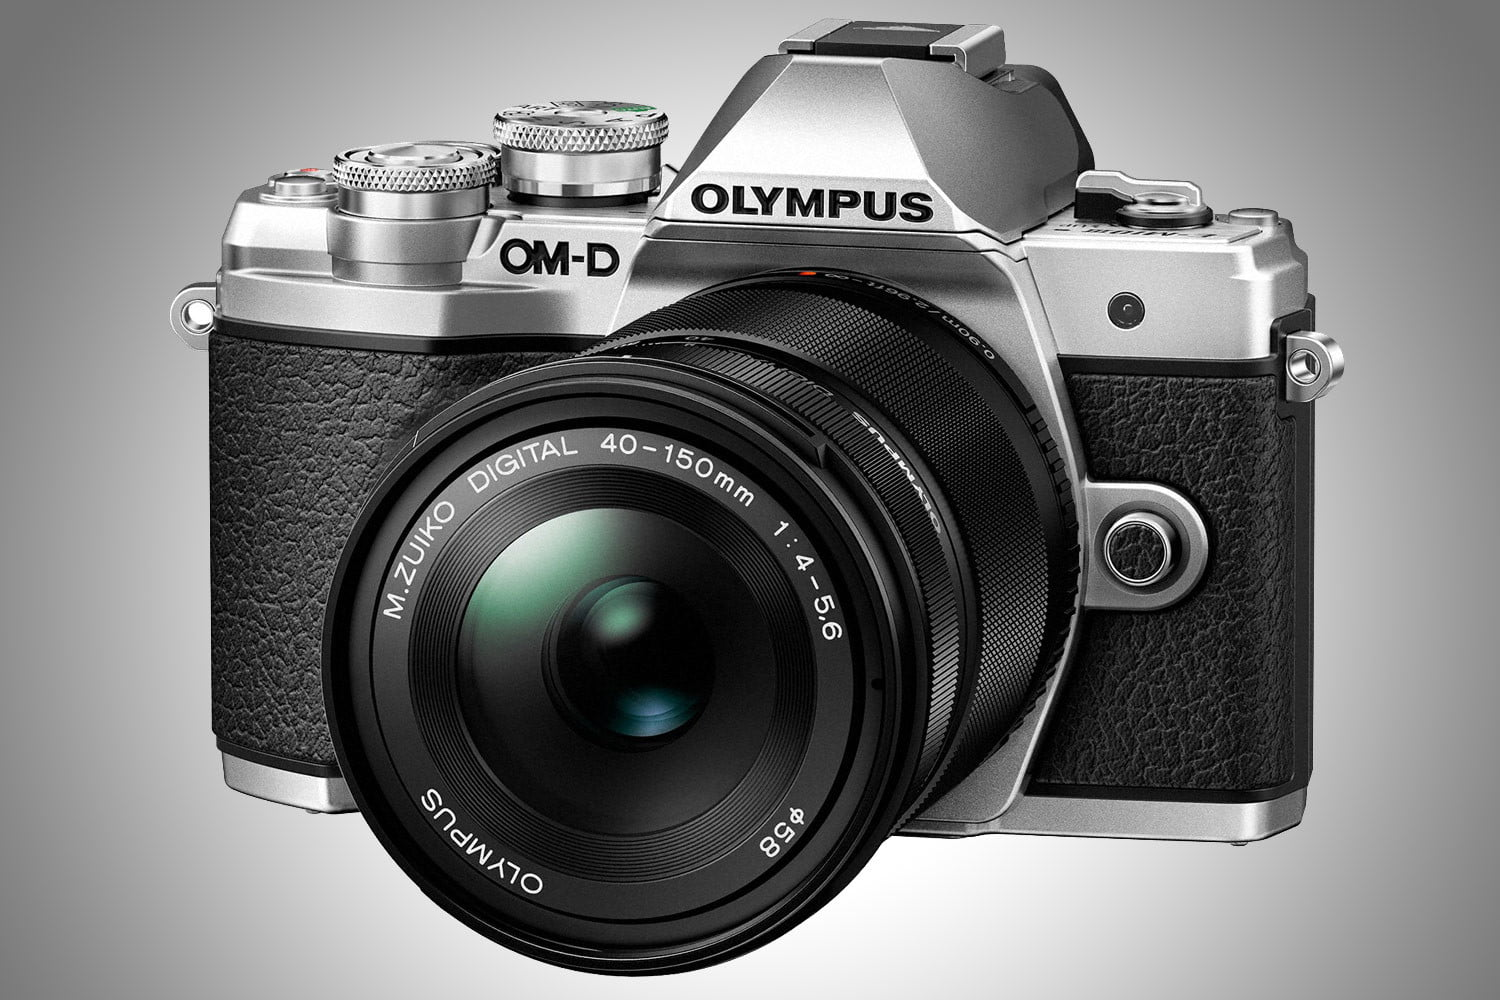 4K Video Comes to Entry-Level Olympus OM-D E-M10 Mark III